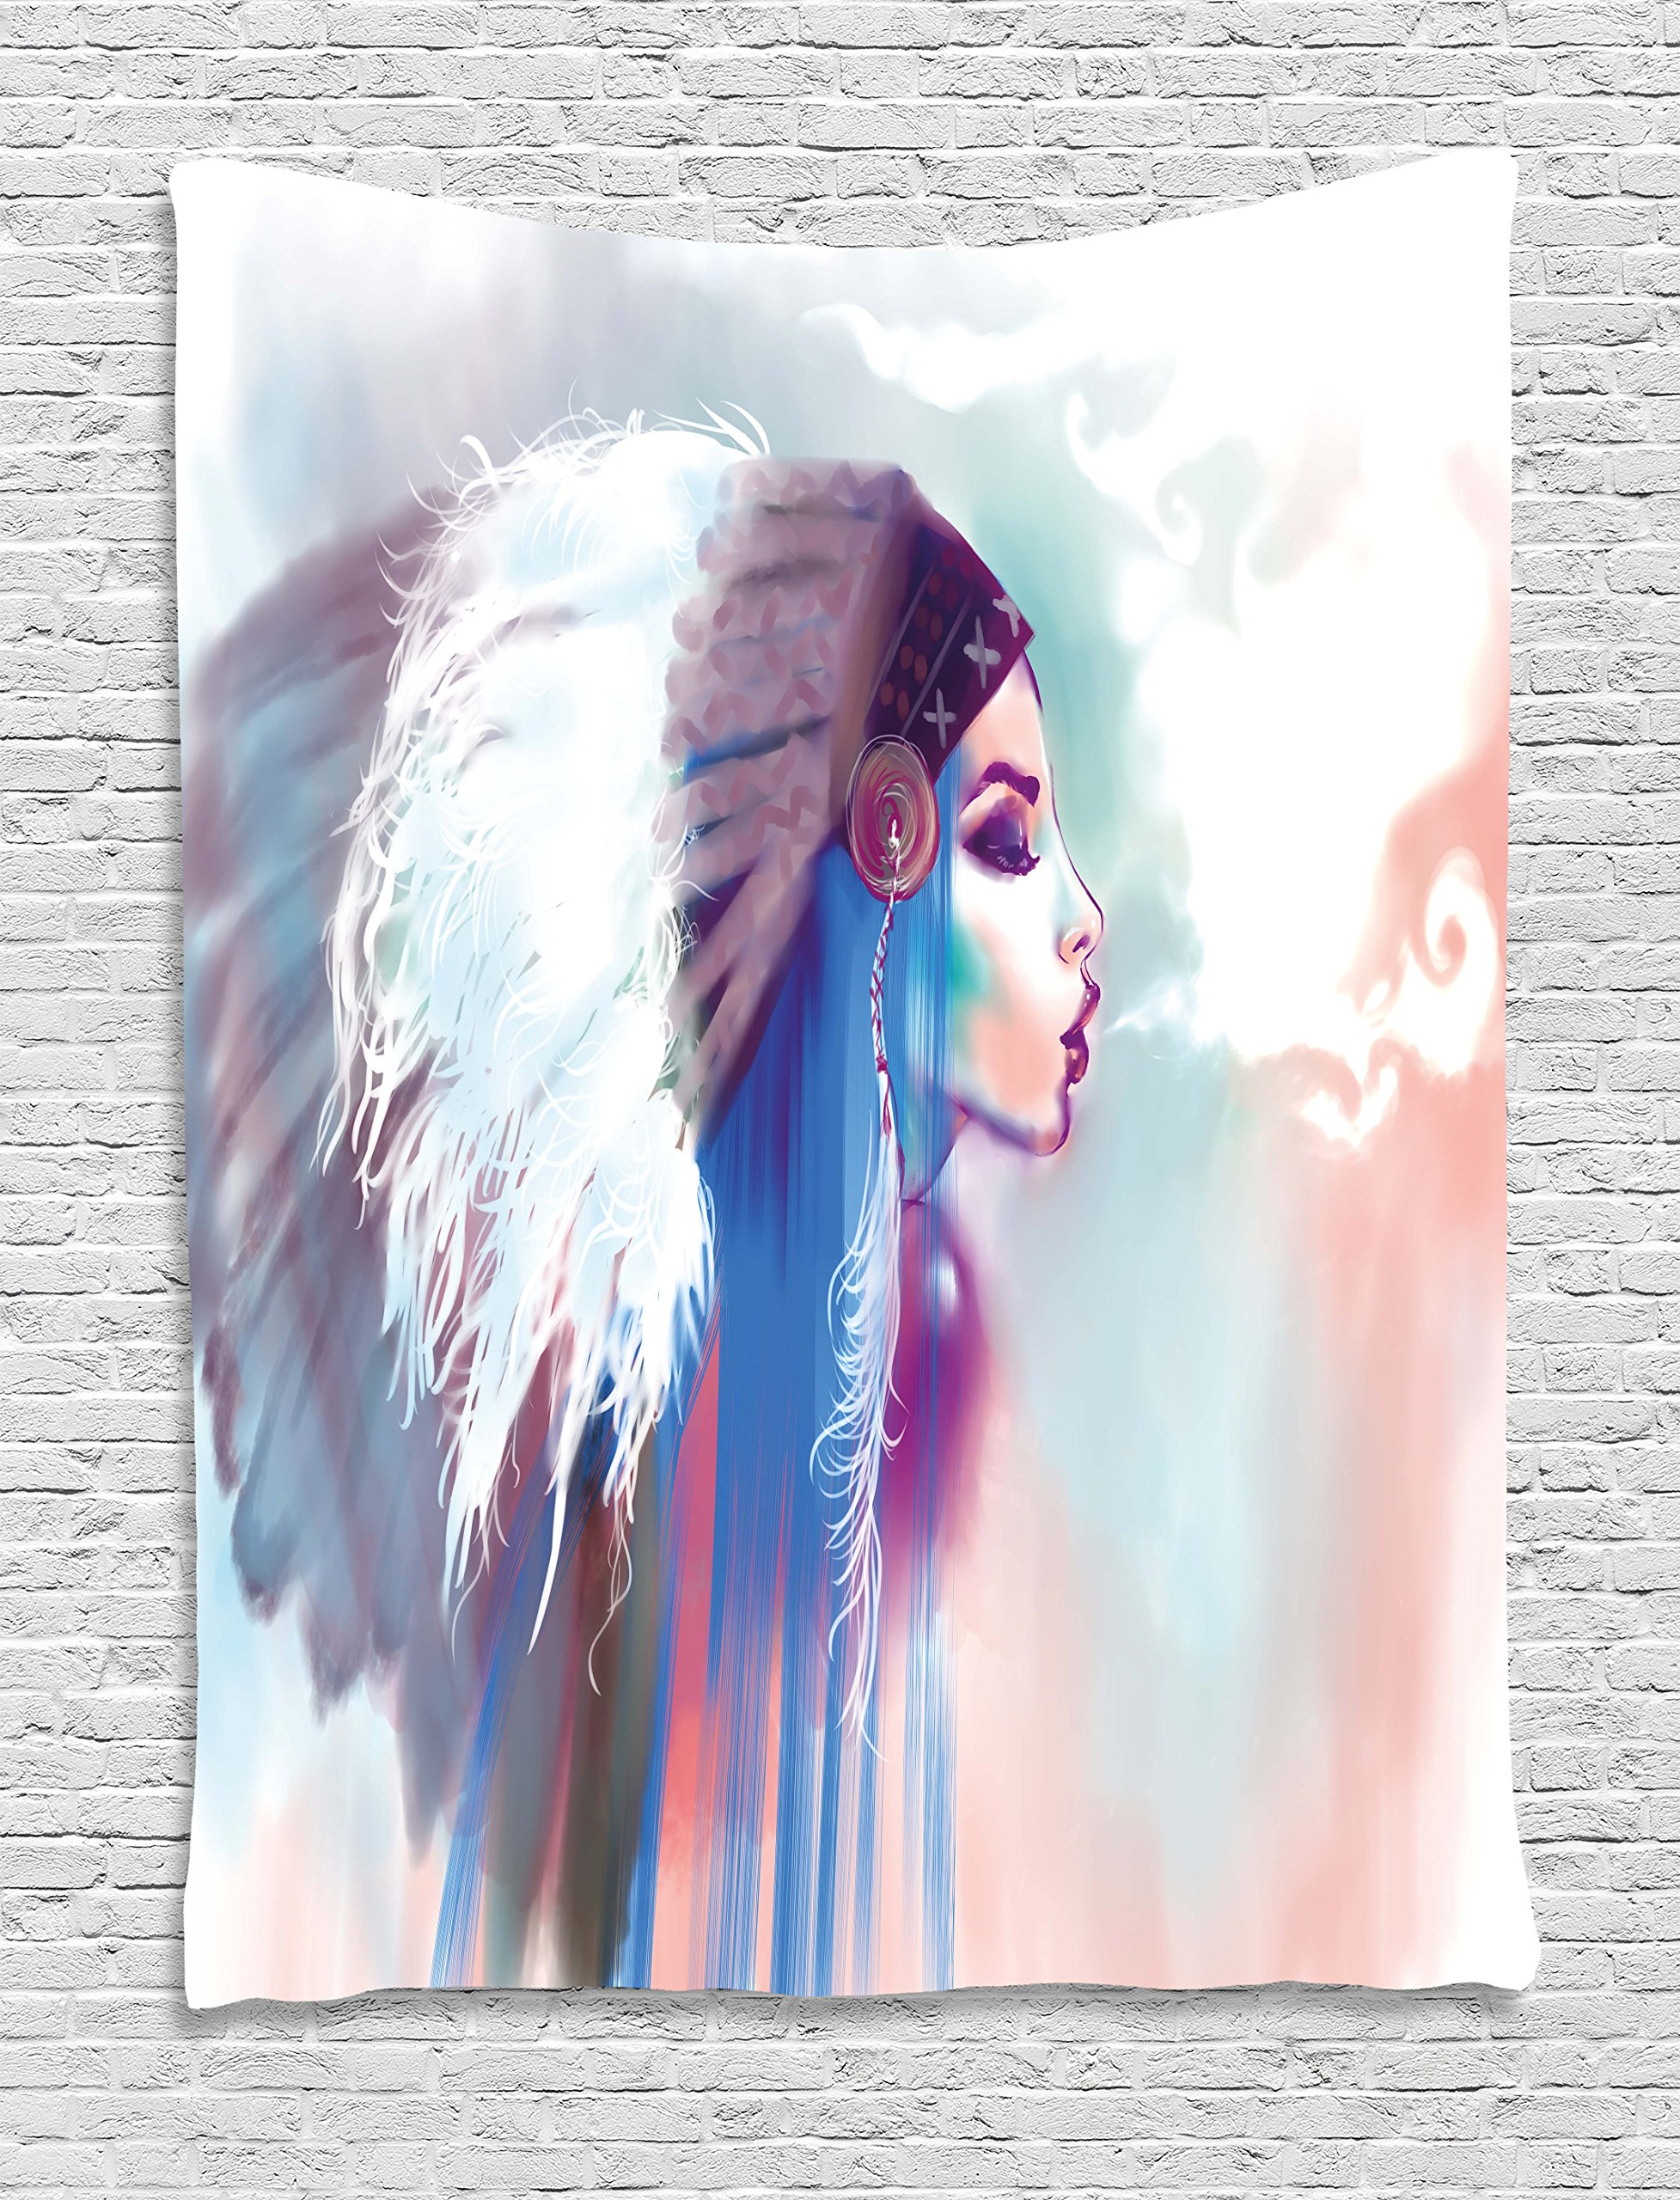 Ambesonne Native American Tapestry, Girl Smoking Pipe Traditional Clothes Abstract Watercolor Background, Wall Hanging Bedroom Living Room Dorm, 40 W X 60 L inches, Multicolor